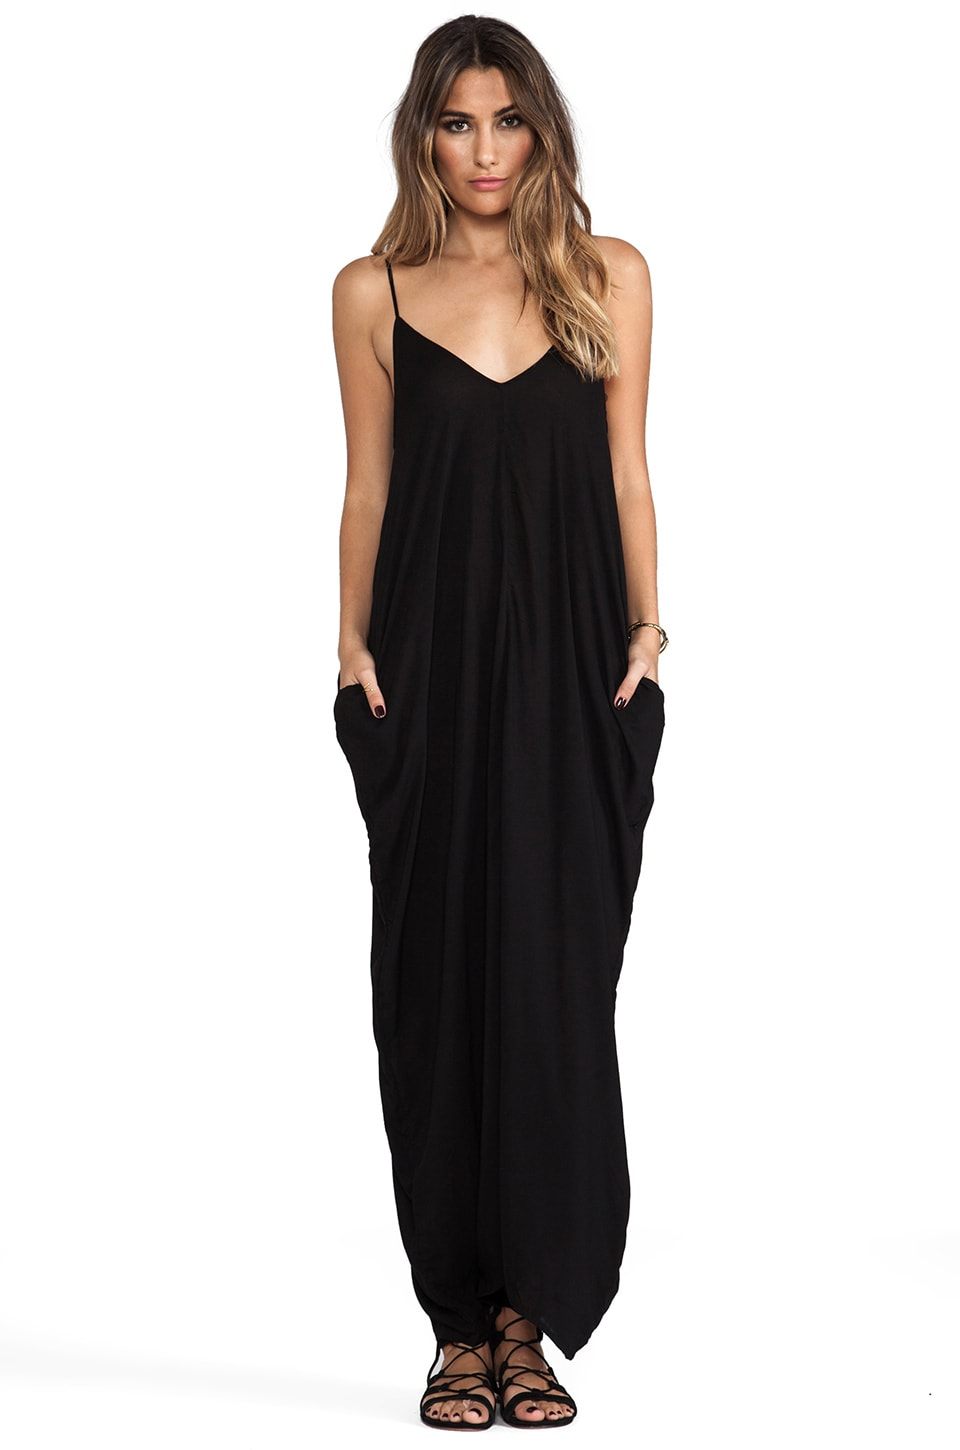 Indah Nala Maxi Dress in Black